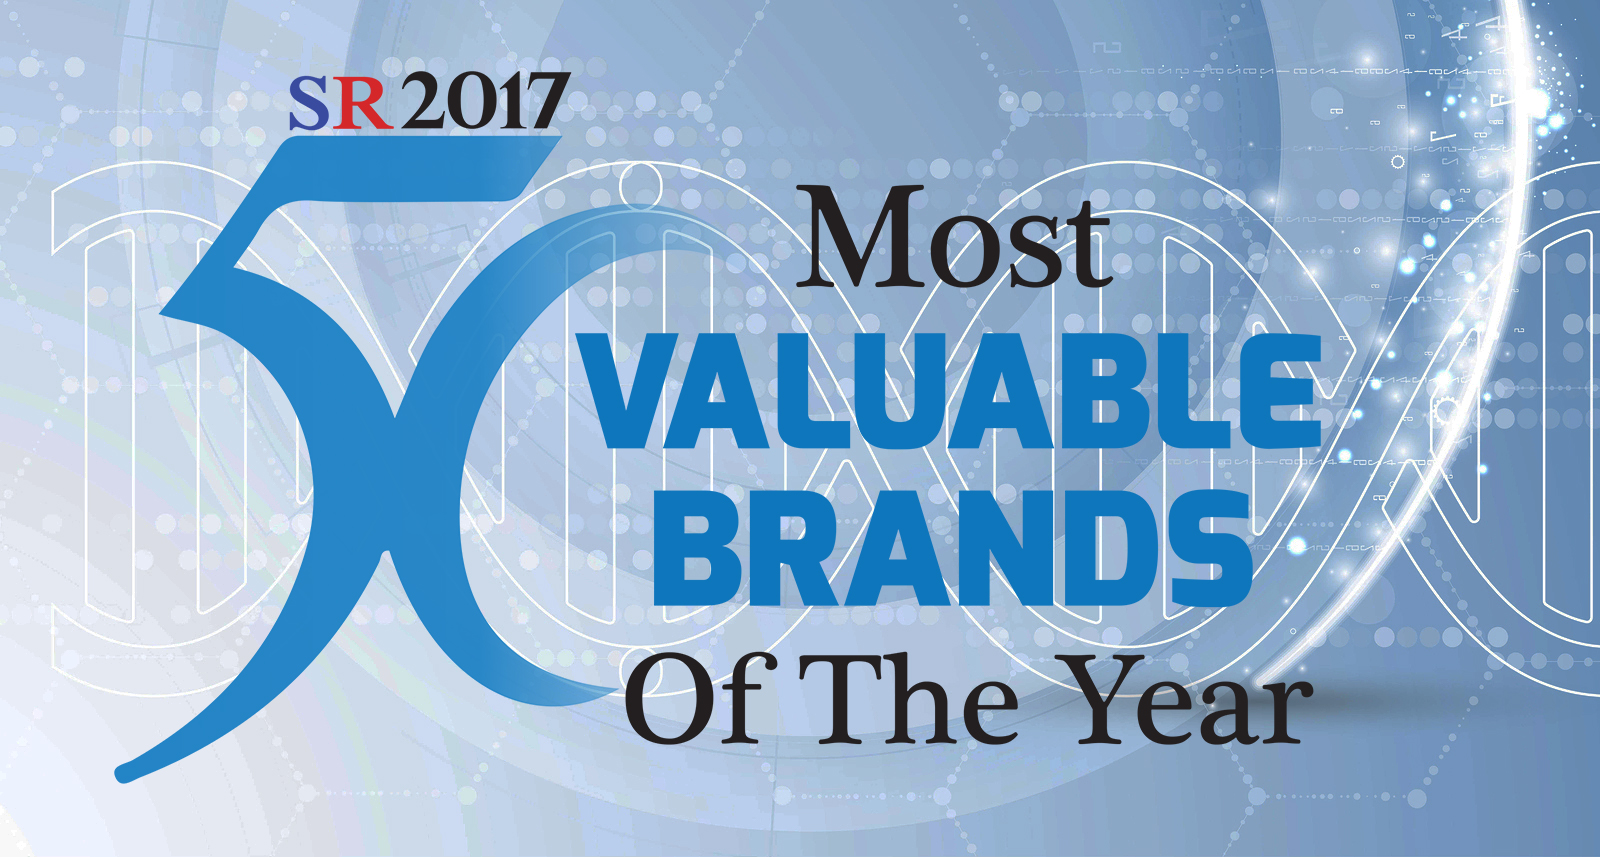 """Asymmetrex Named One of the """"50 Most Valuable Brands of the Year"""""""